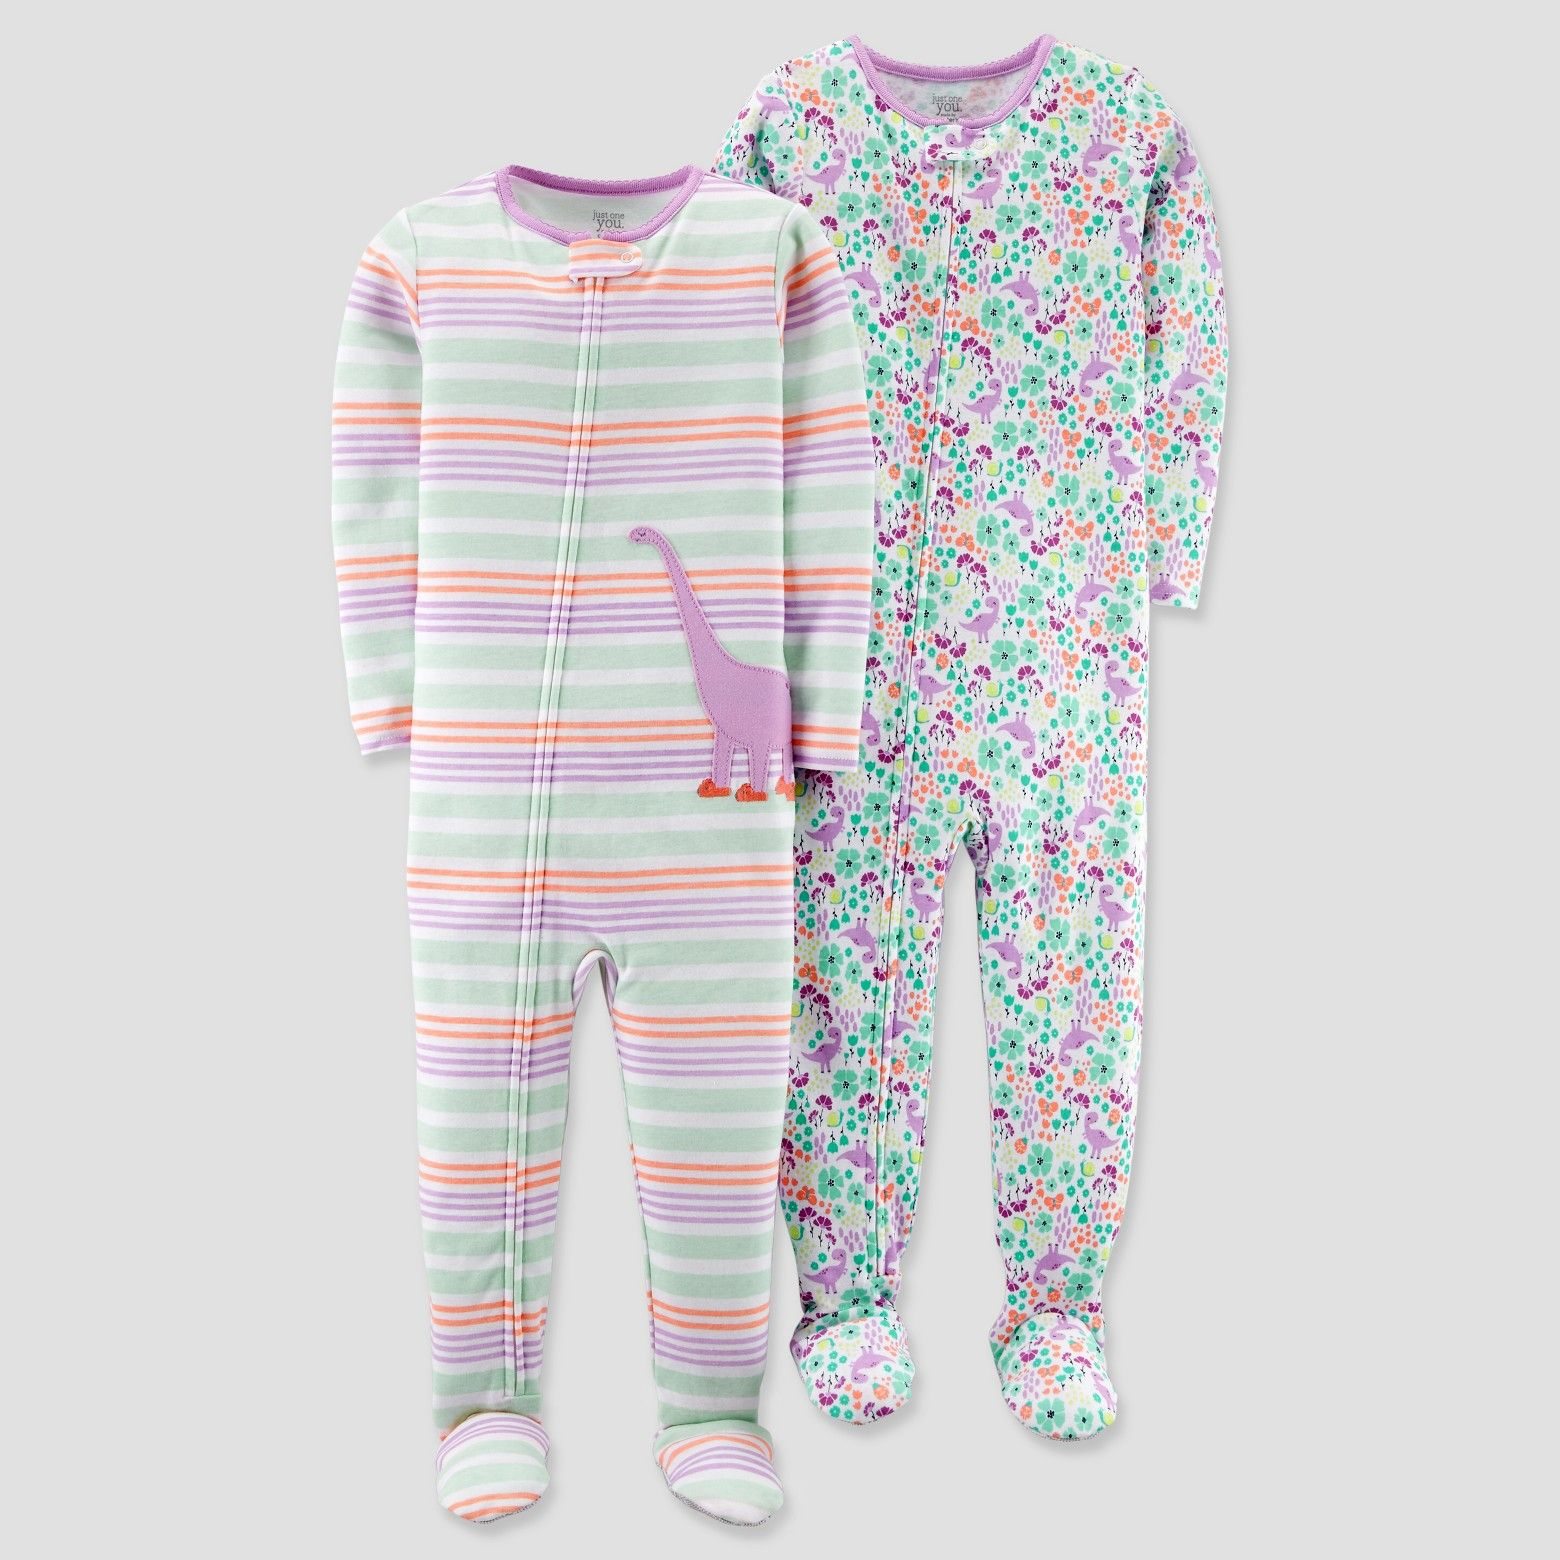 955cf3f97e86 Baby Girls  2pk Cotton Dino Stripe Footed Pajama Set - Just One You ...